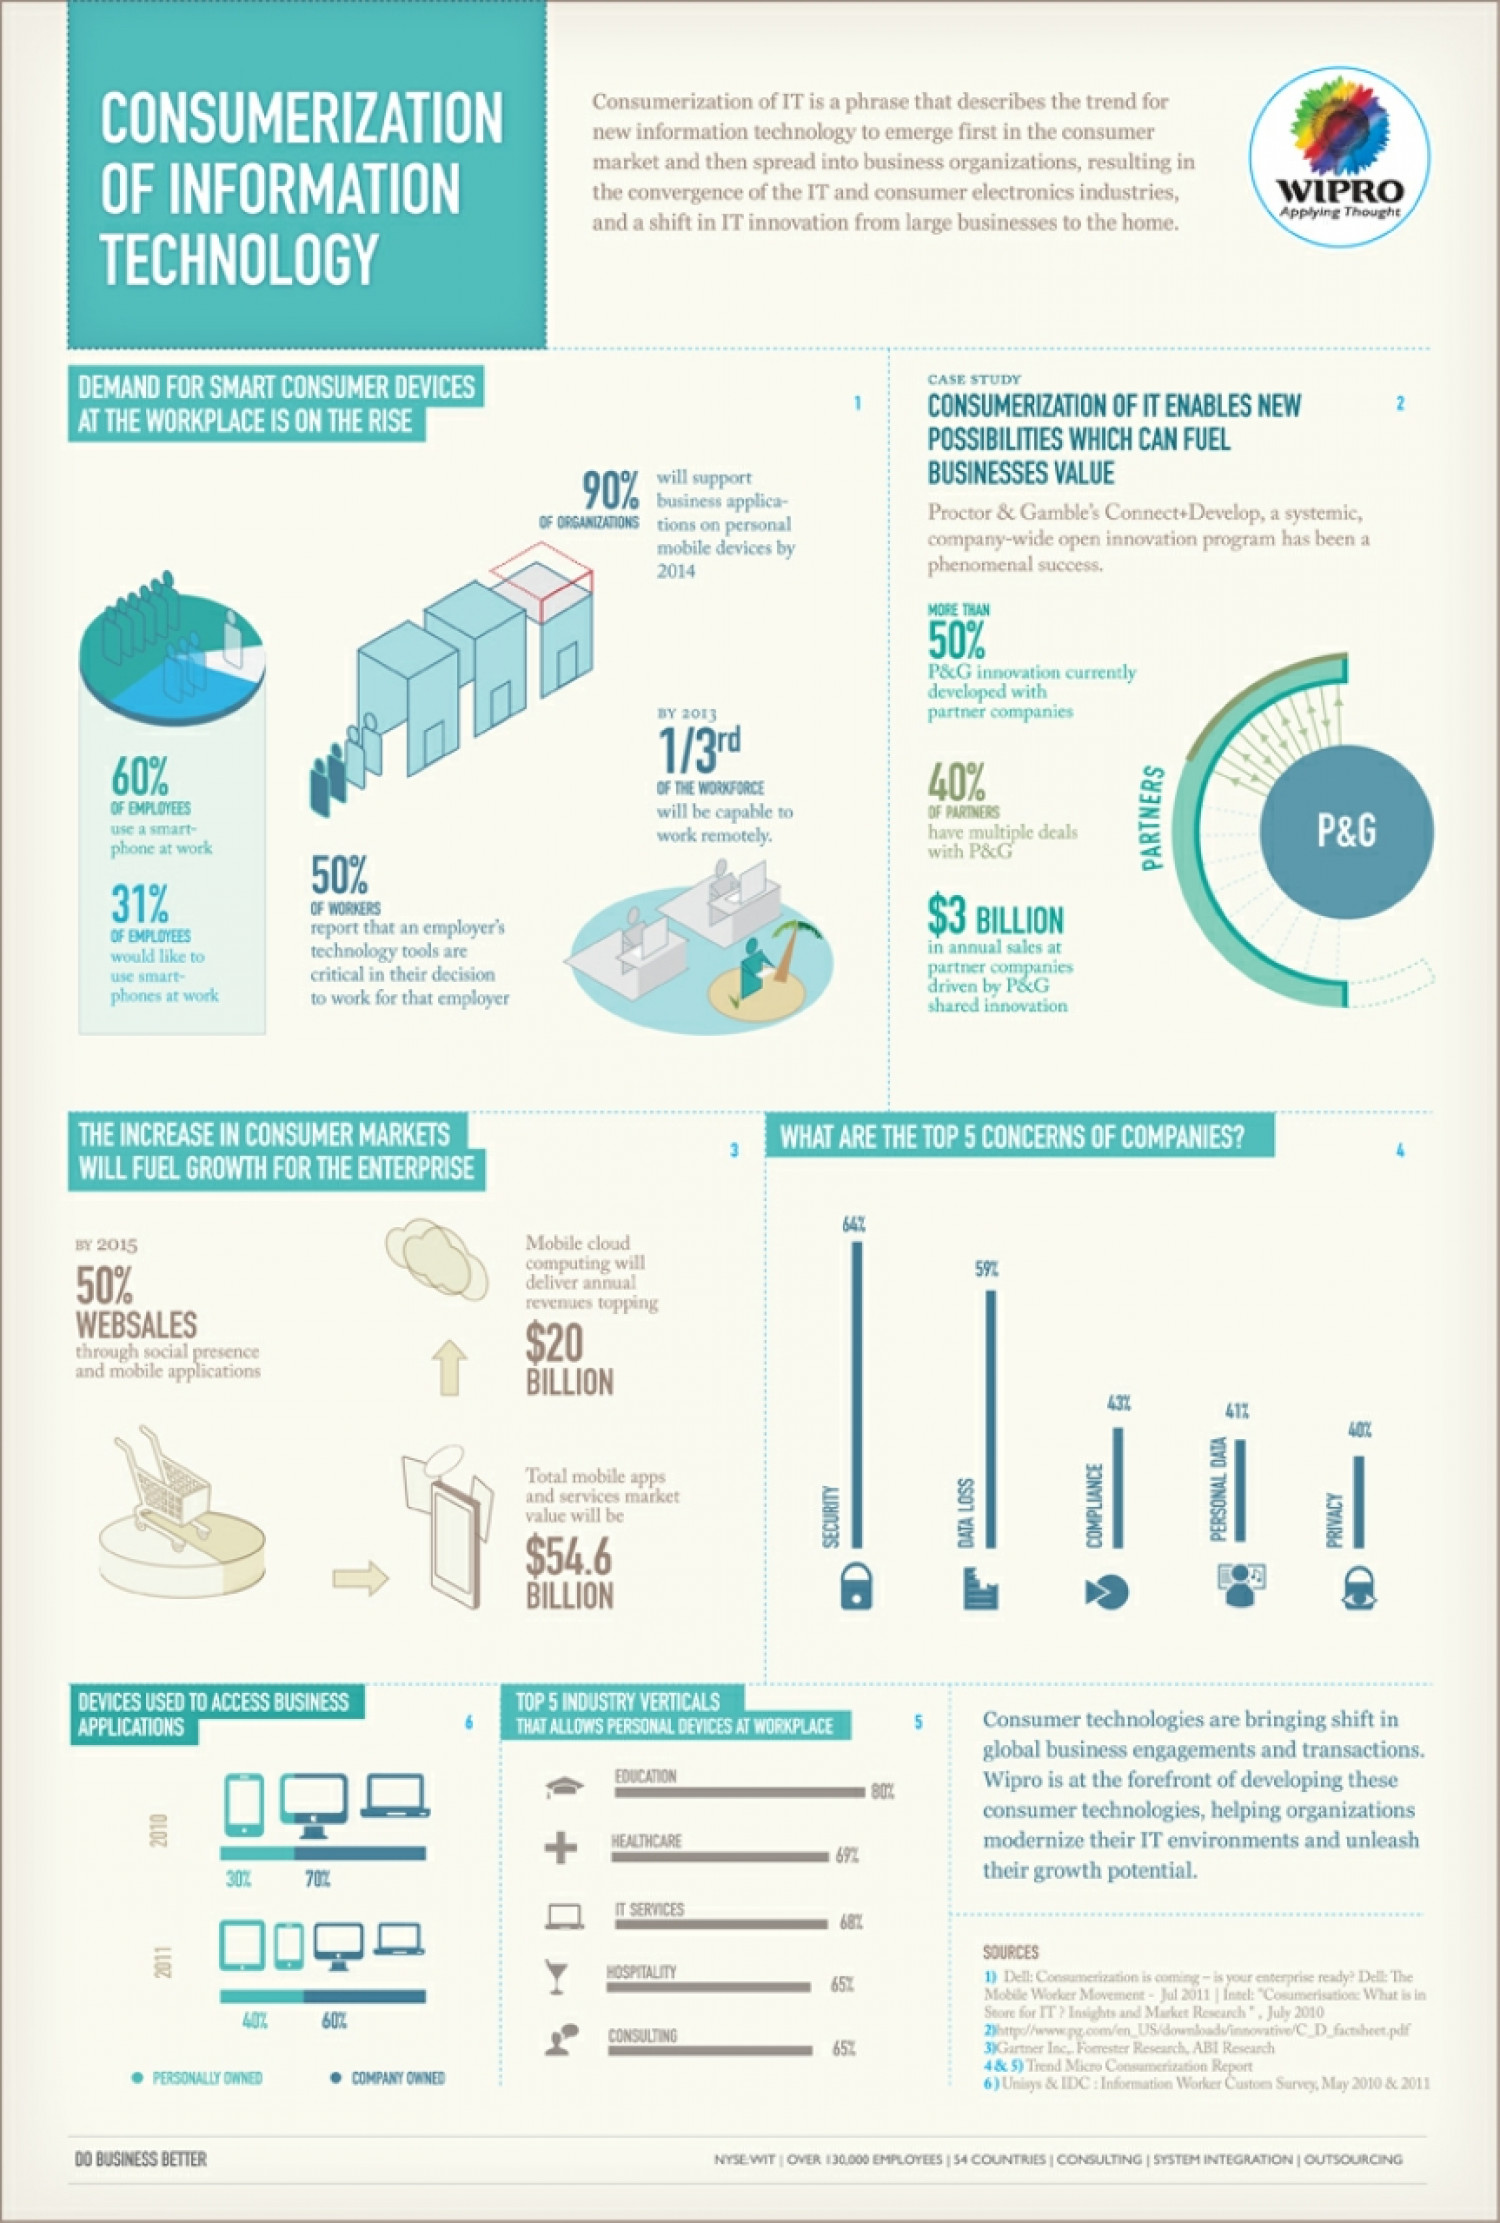 Consumerization of IT Infographic